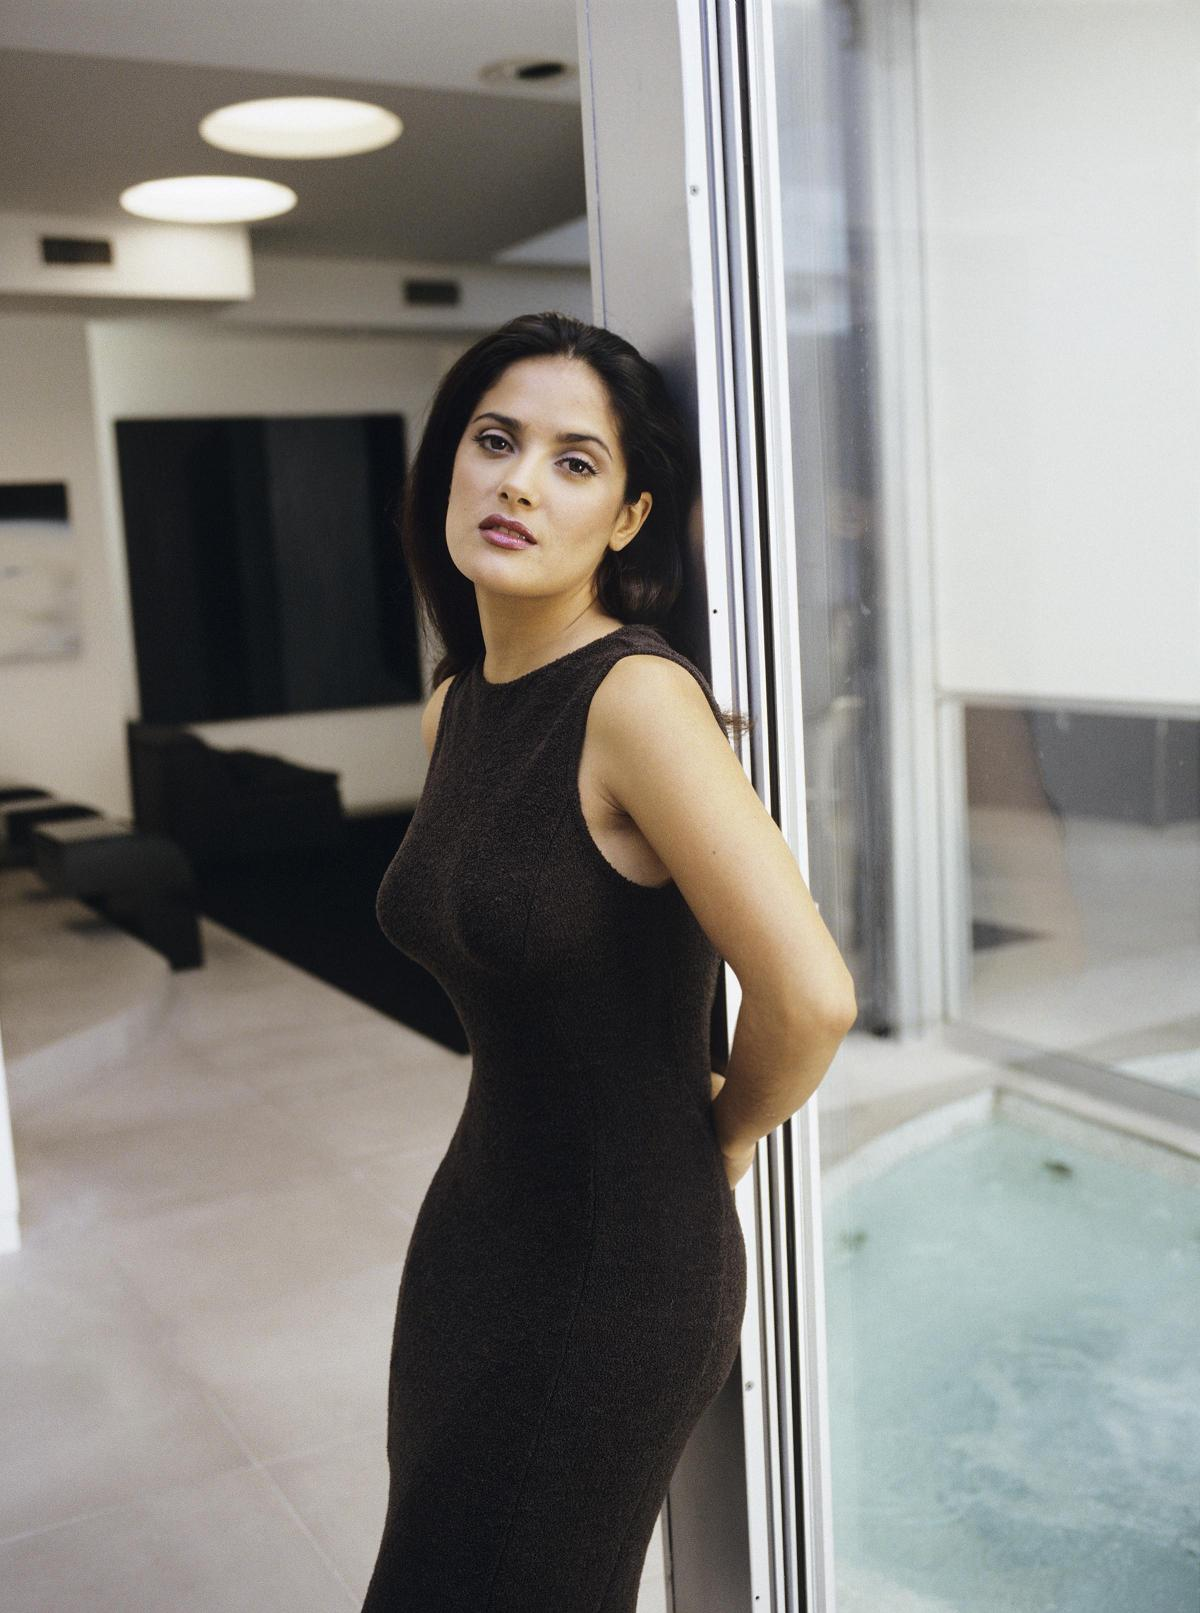 Salma Hayek photo #171047